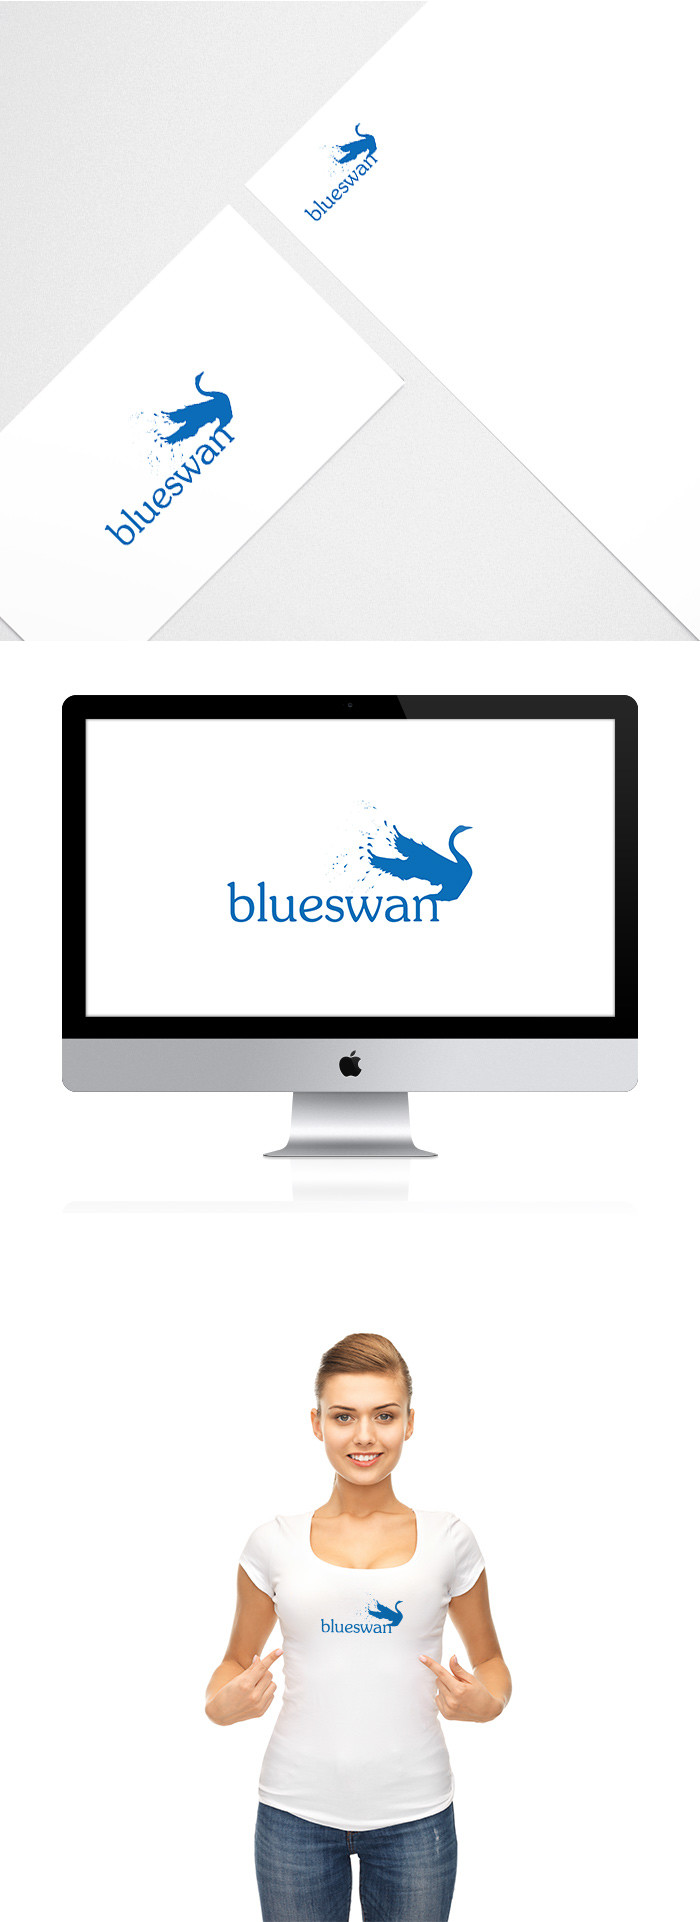 blue swan logo design